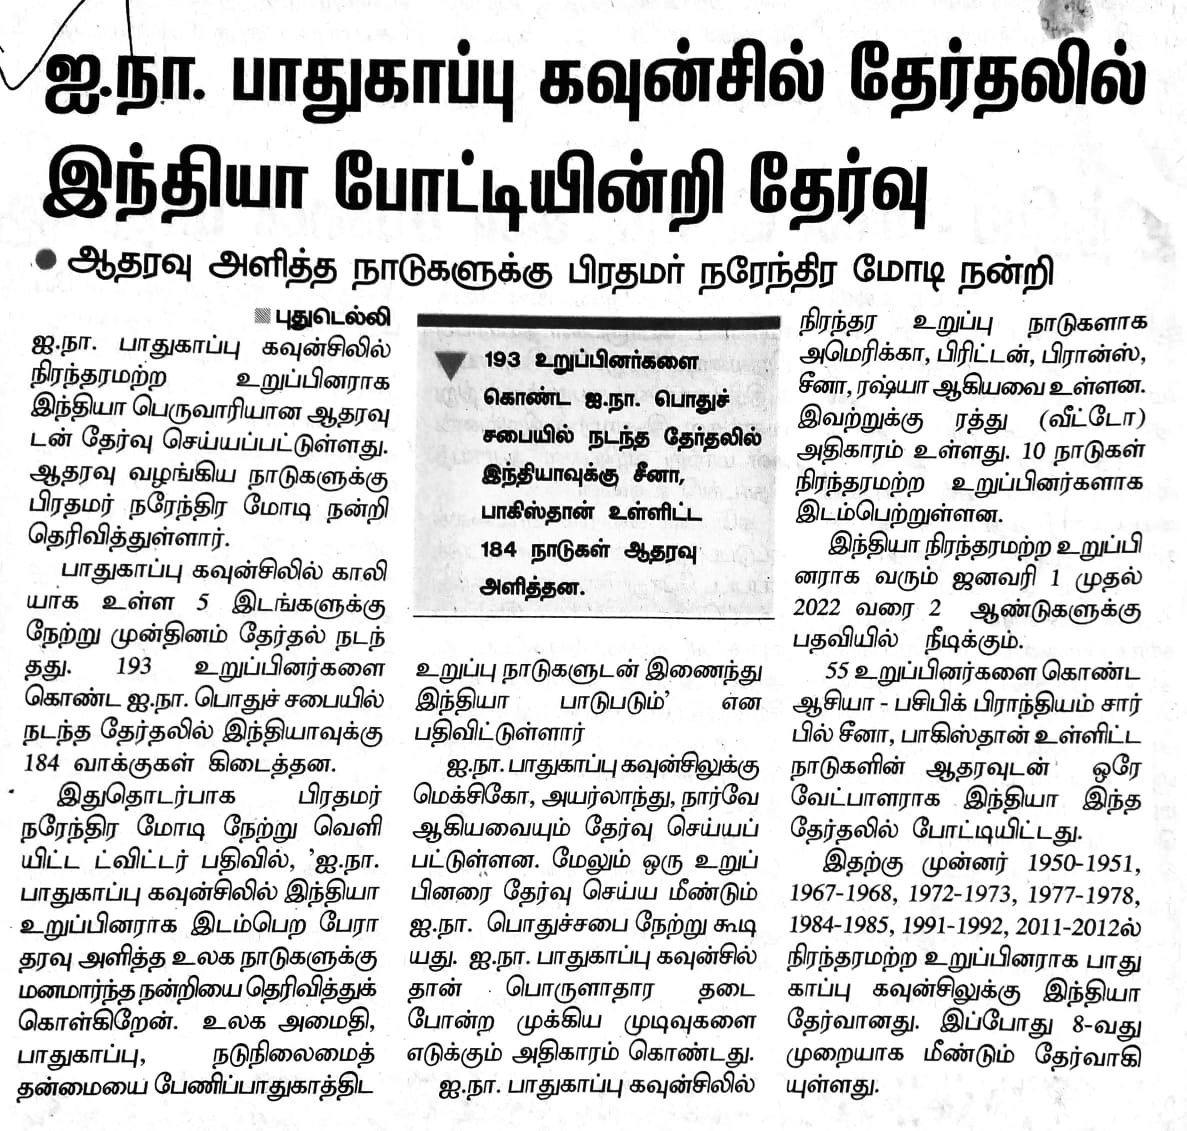 19.06.2020 Important News Paper Clippings